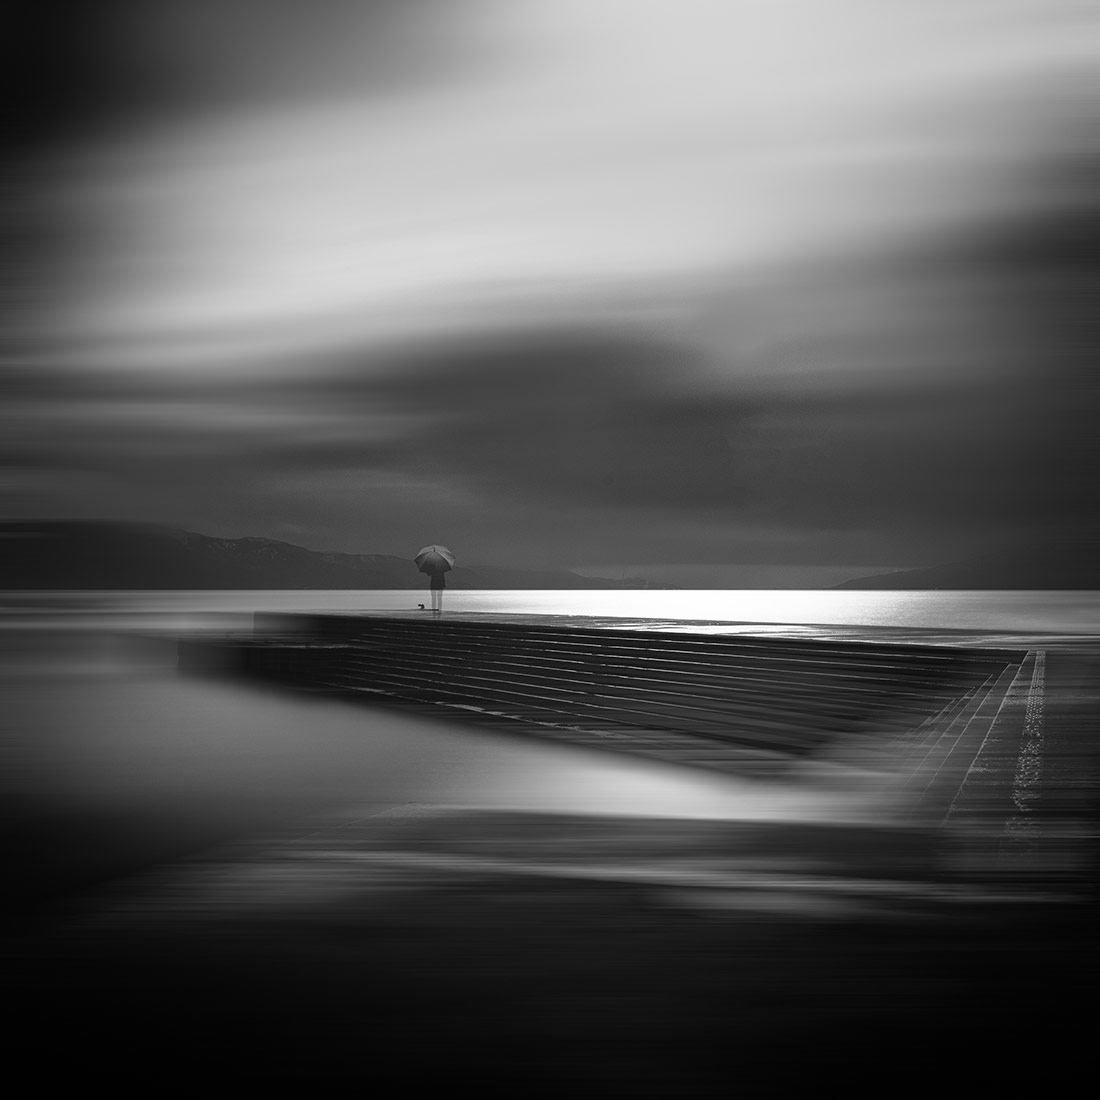 Memory, © Seong Joe Woo, 1st Place - Black & White Fine Art Photo of the Year 2018, MonoVisions Photography Awards